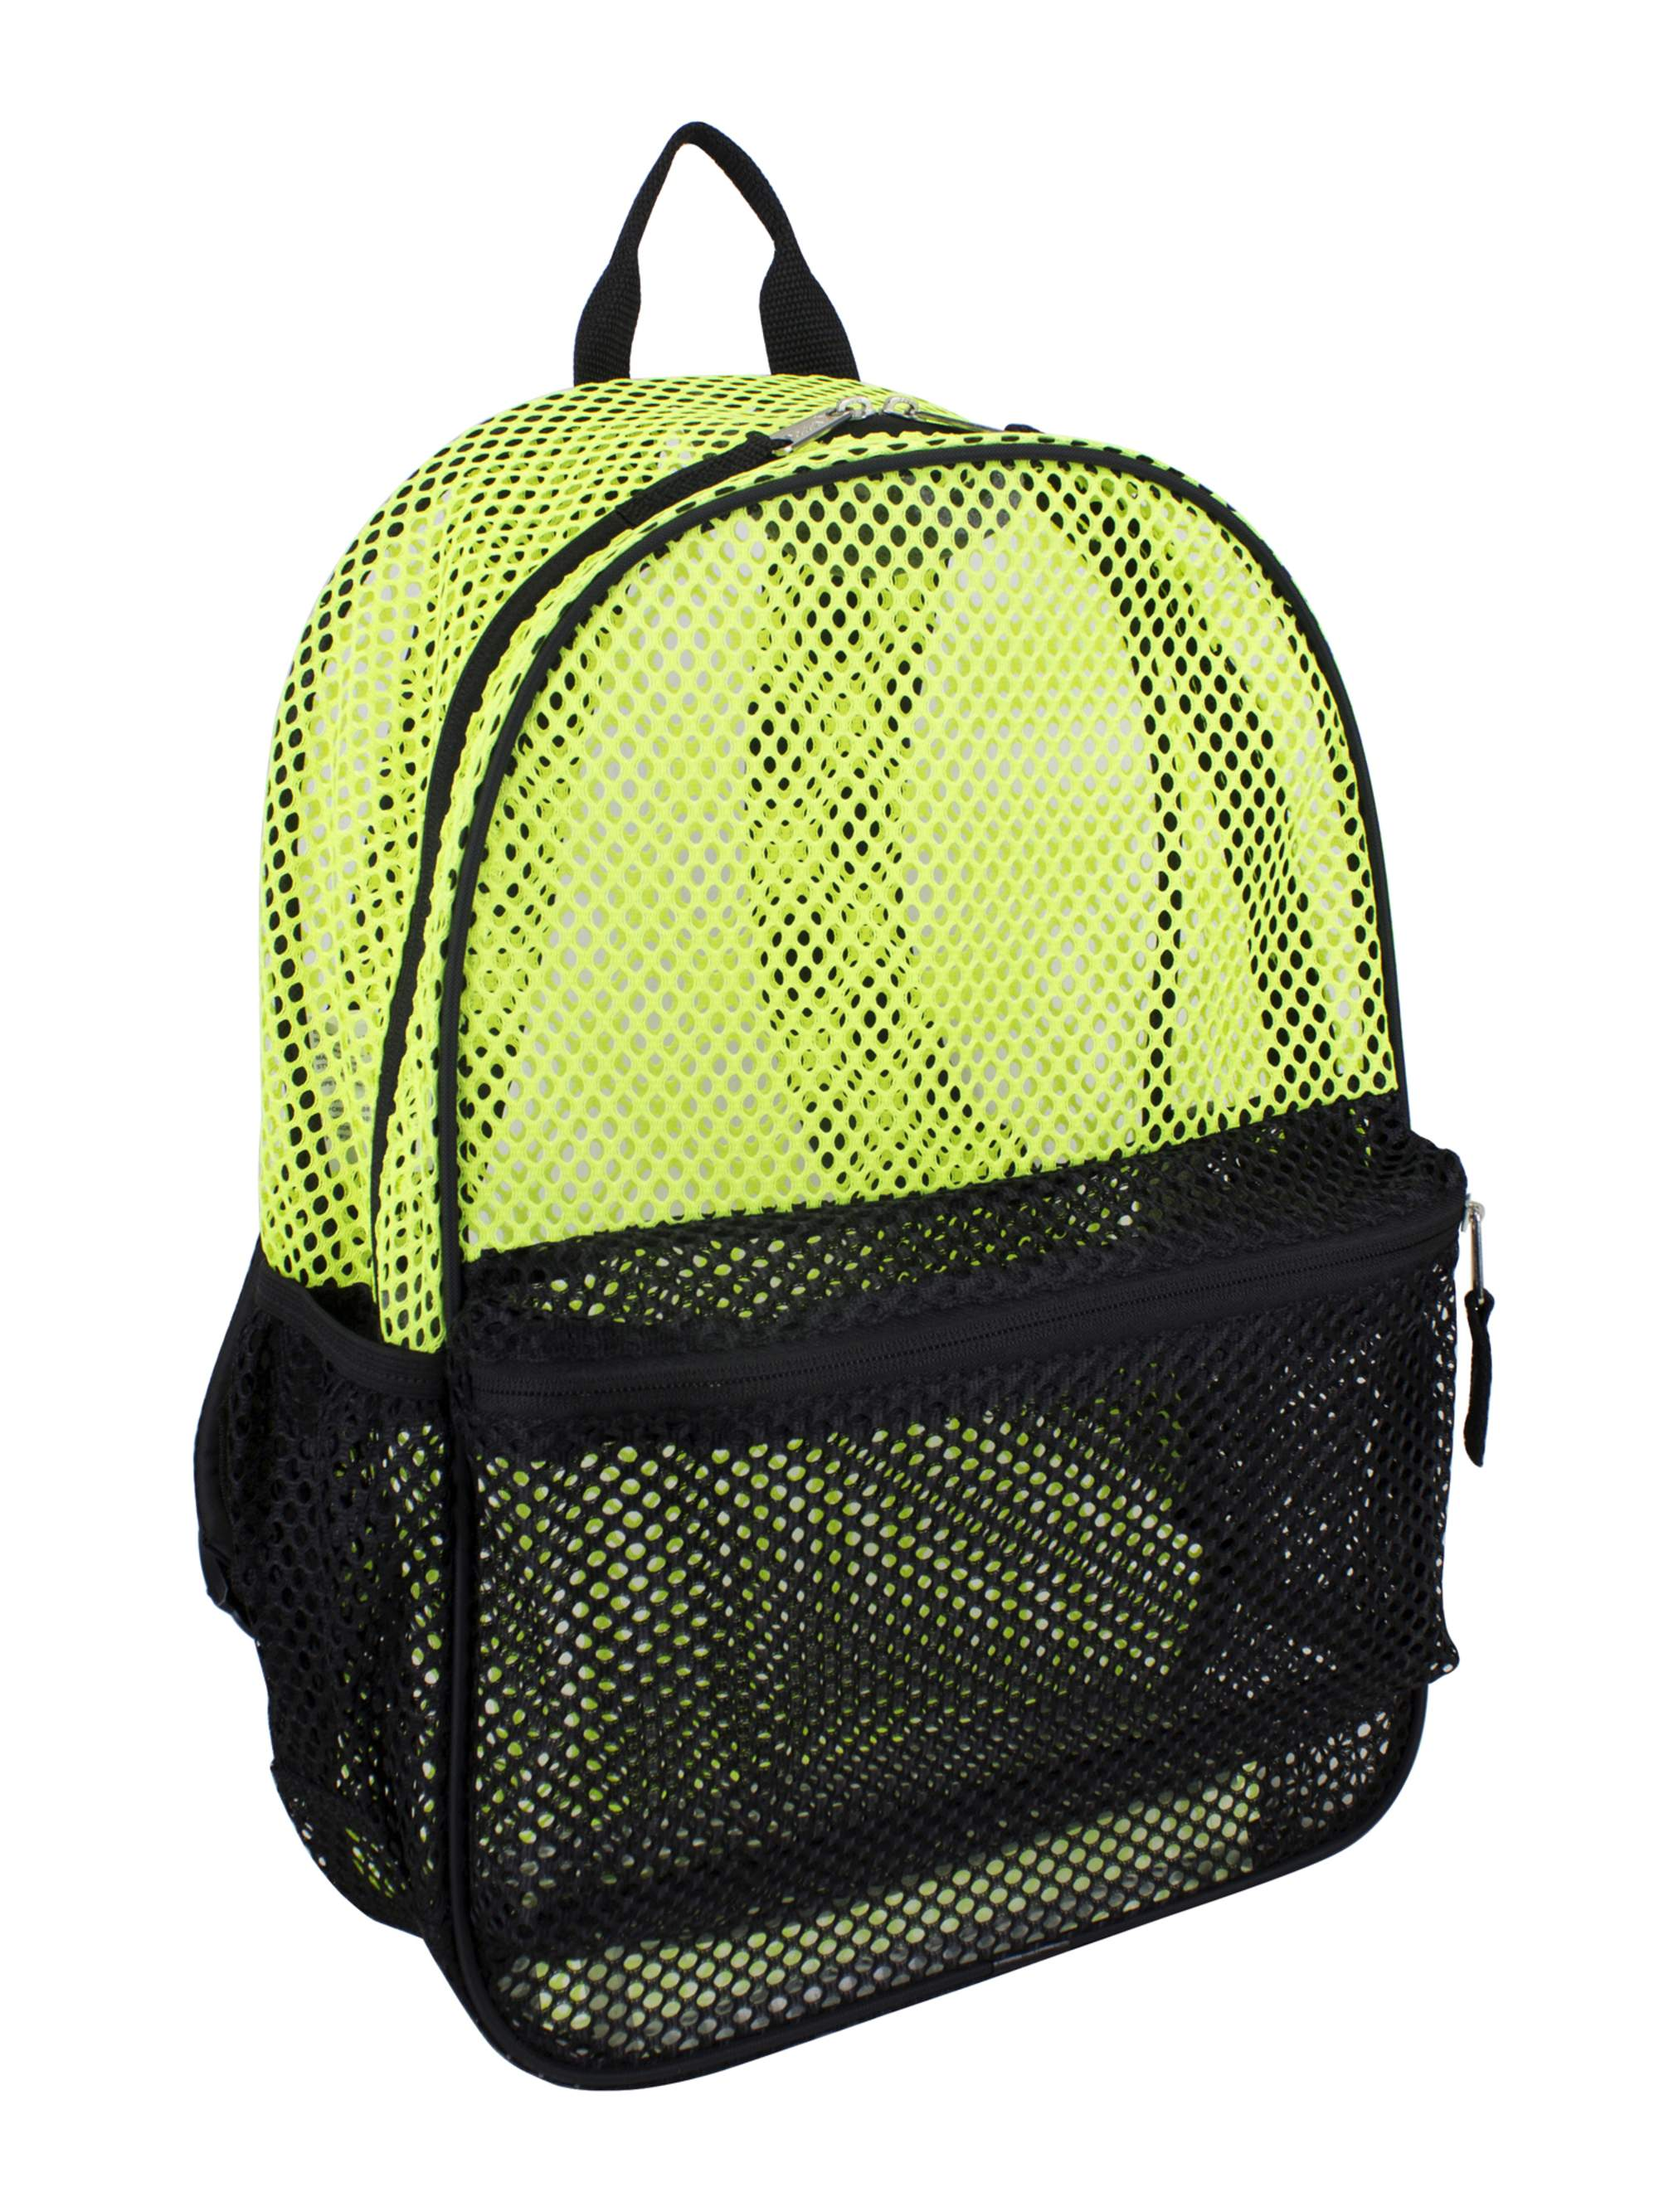 Eastsport Mesh Backpack with Padded Adjustable Straps by Generic